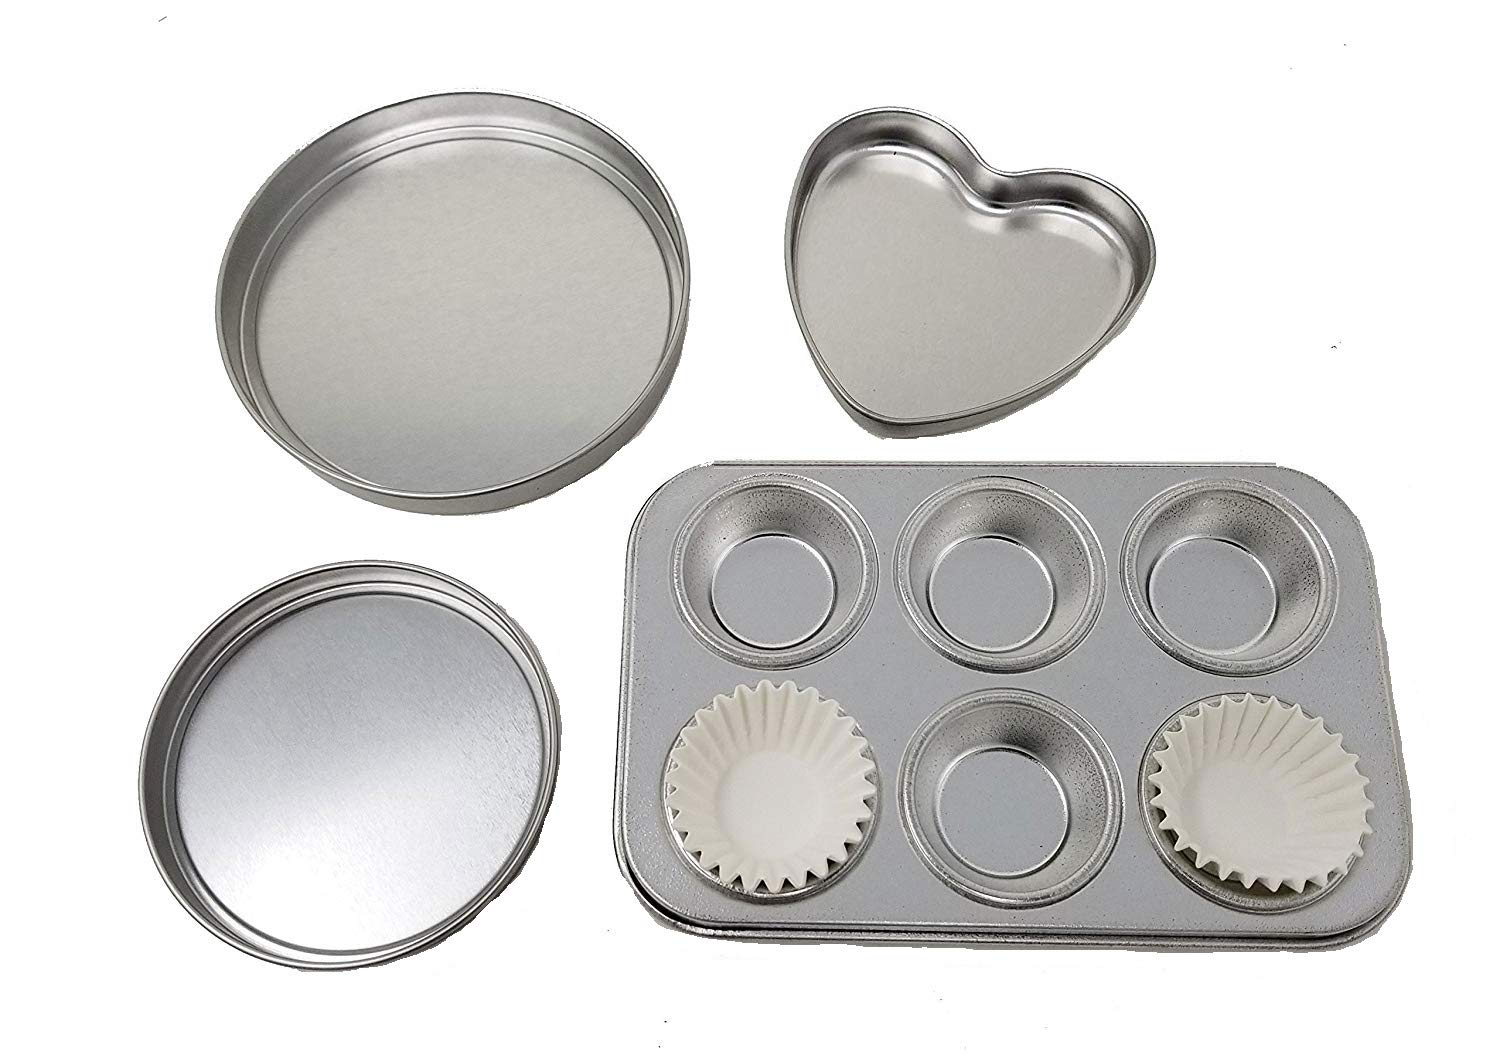 4 Pan Kit to fit Easy Ovens Bake , Heart Pan, 2 Round Pans & 1 small extra rectangle pan replacements by E&Bake